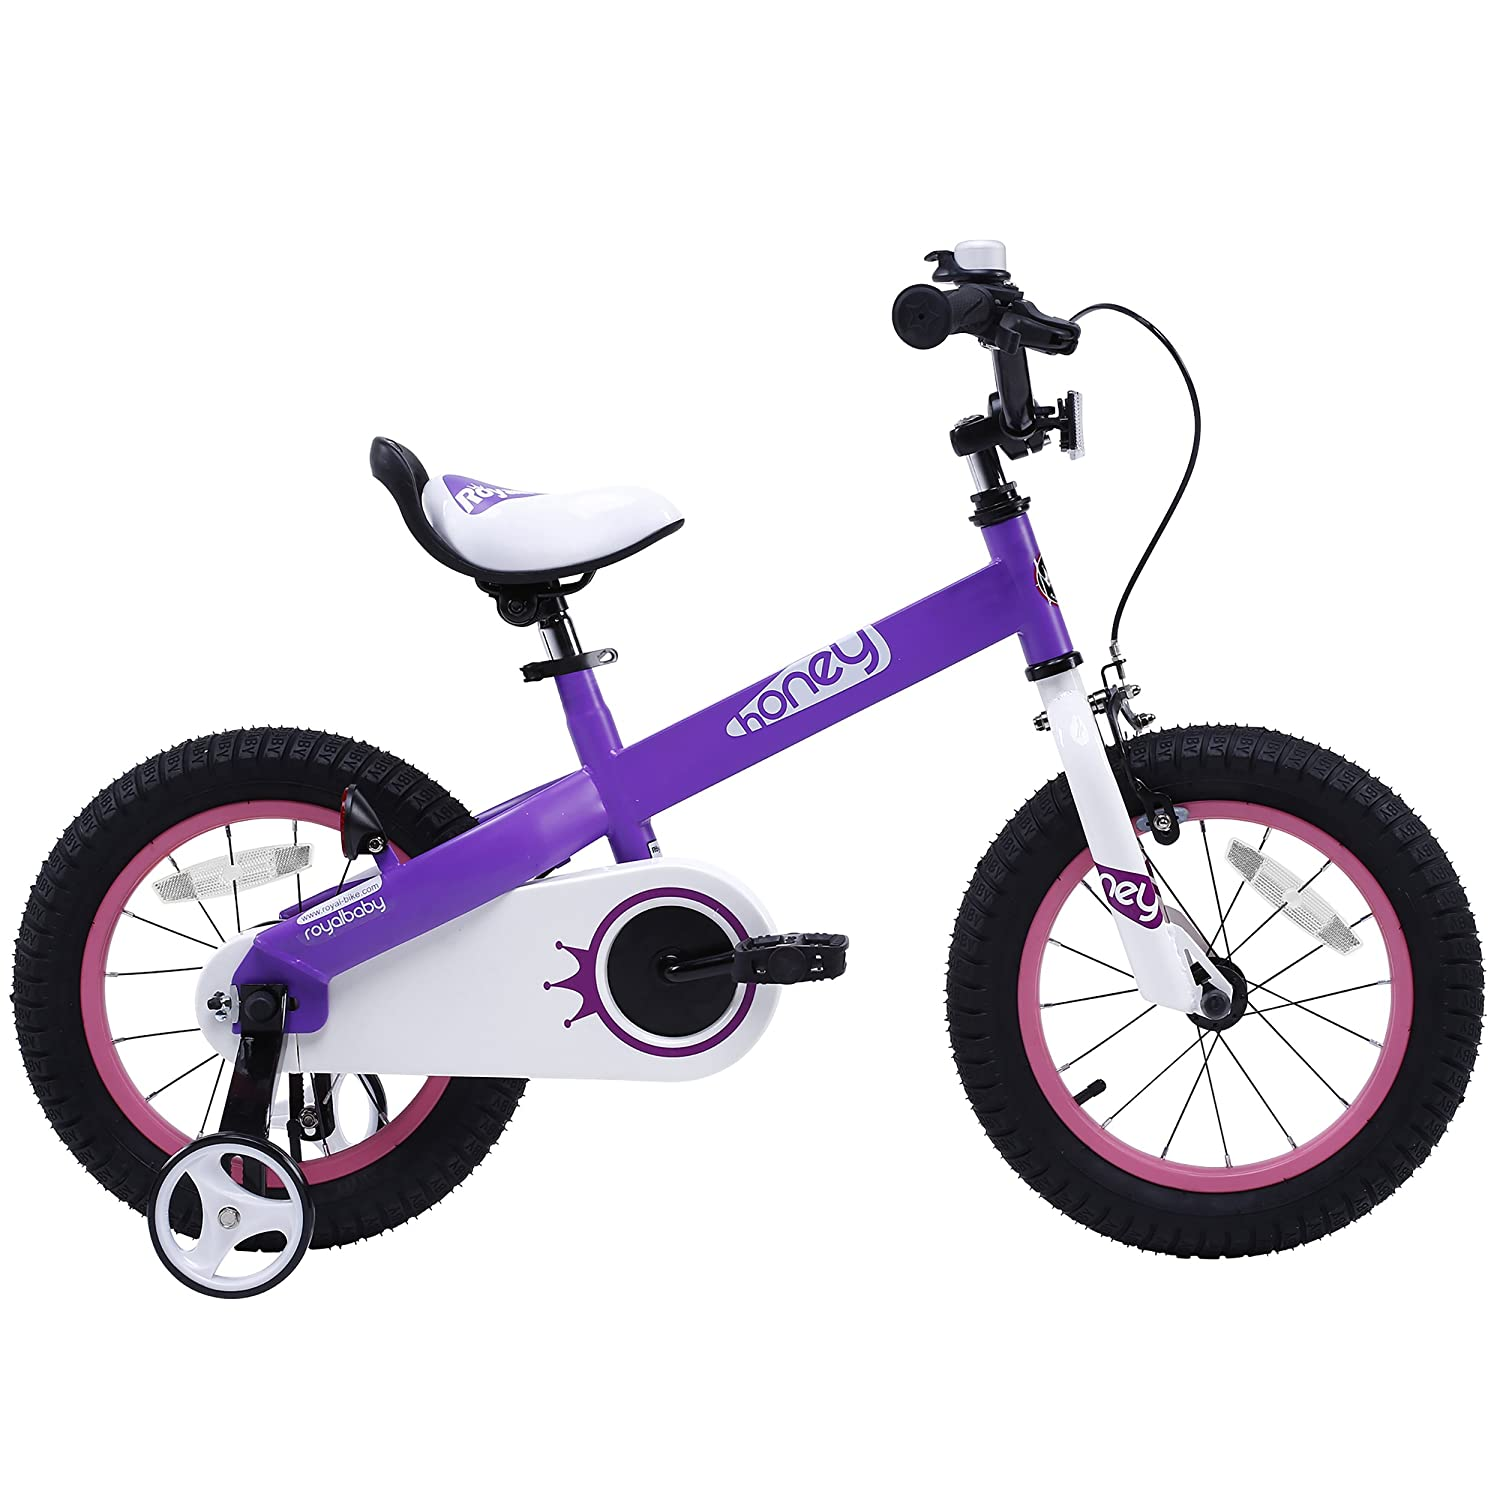 RoyalBaby CubeTube Kid's bikes, unisex children's bikes